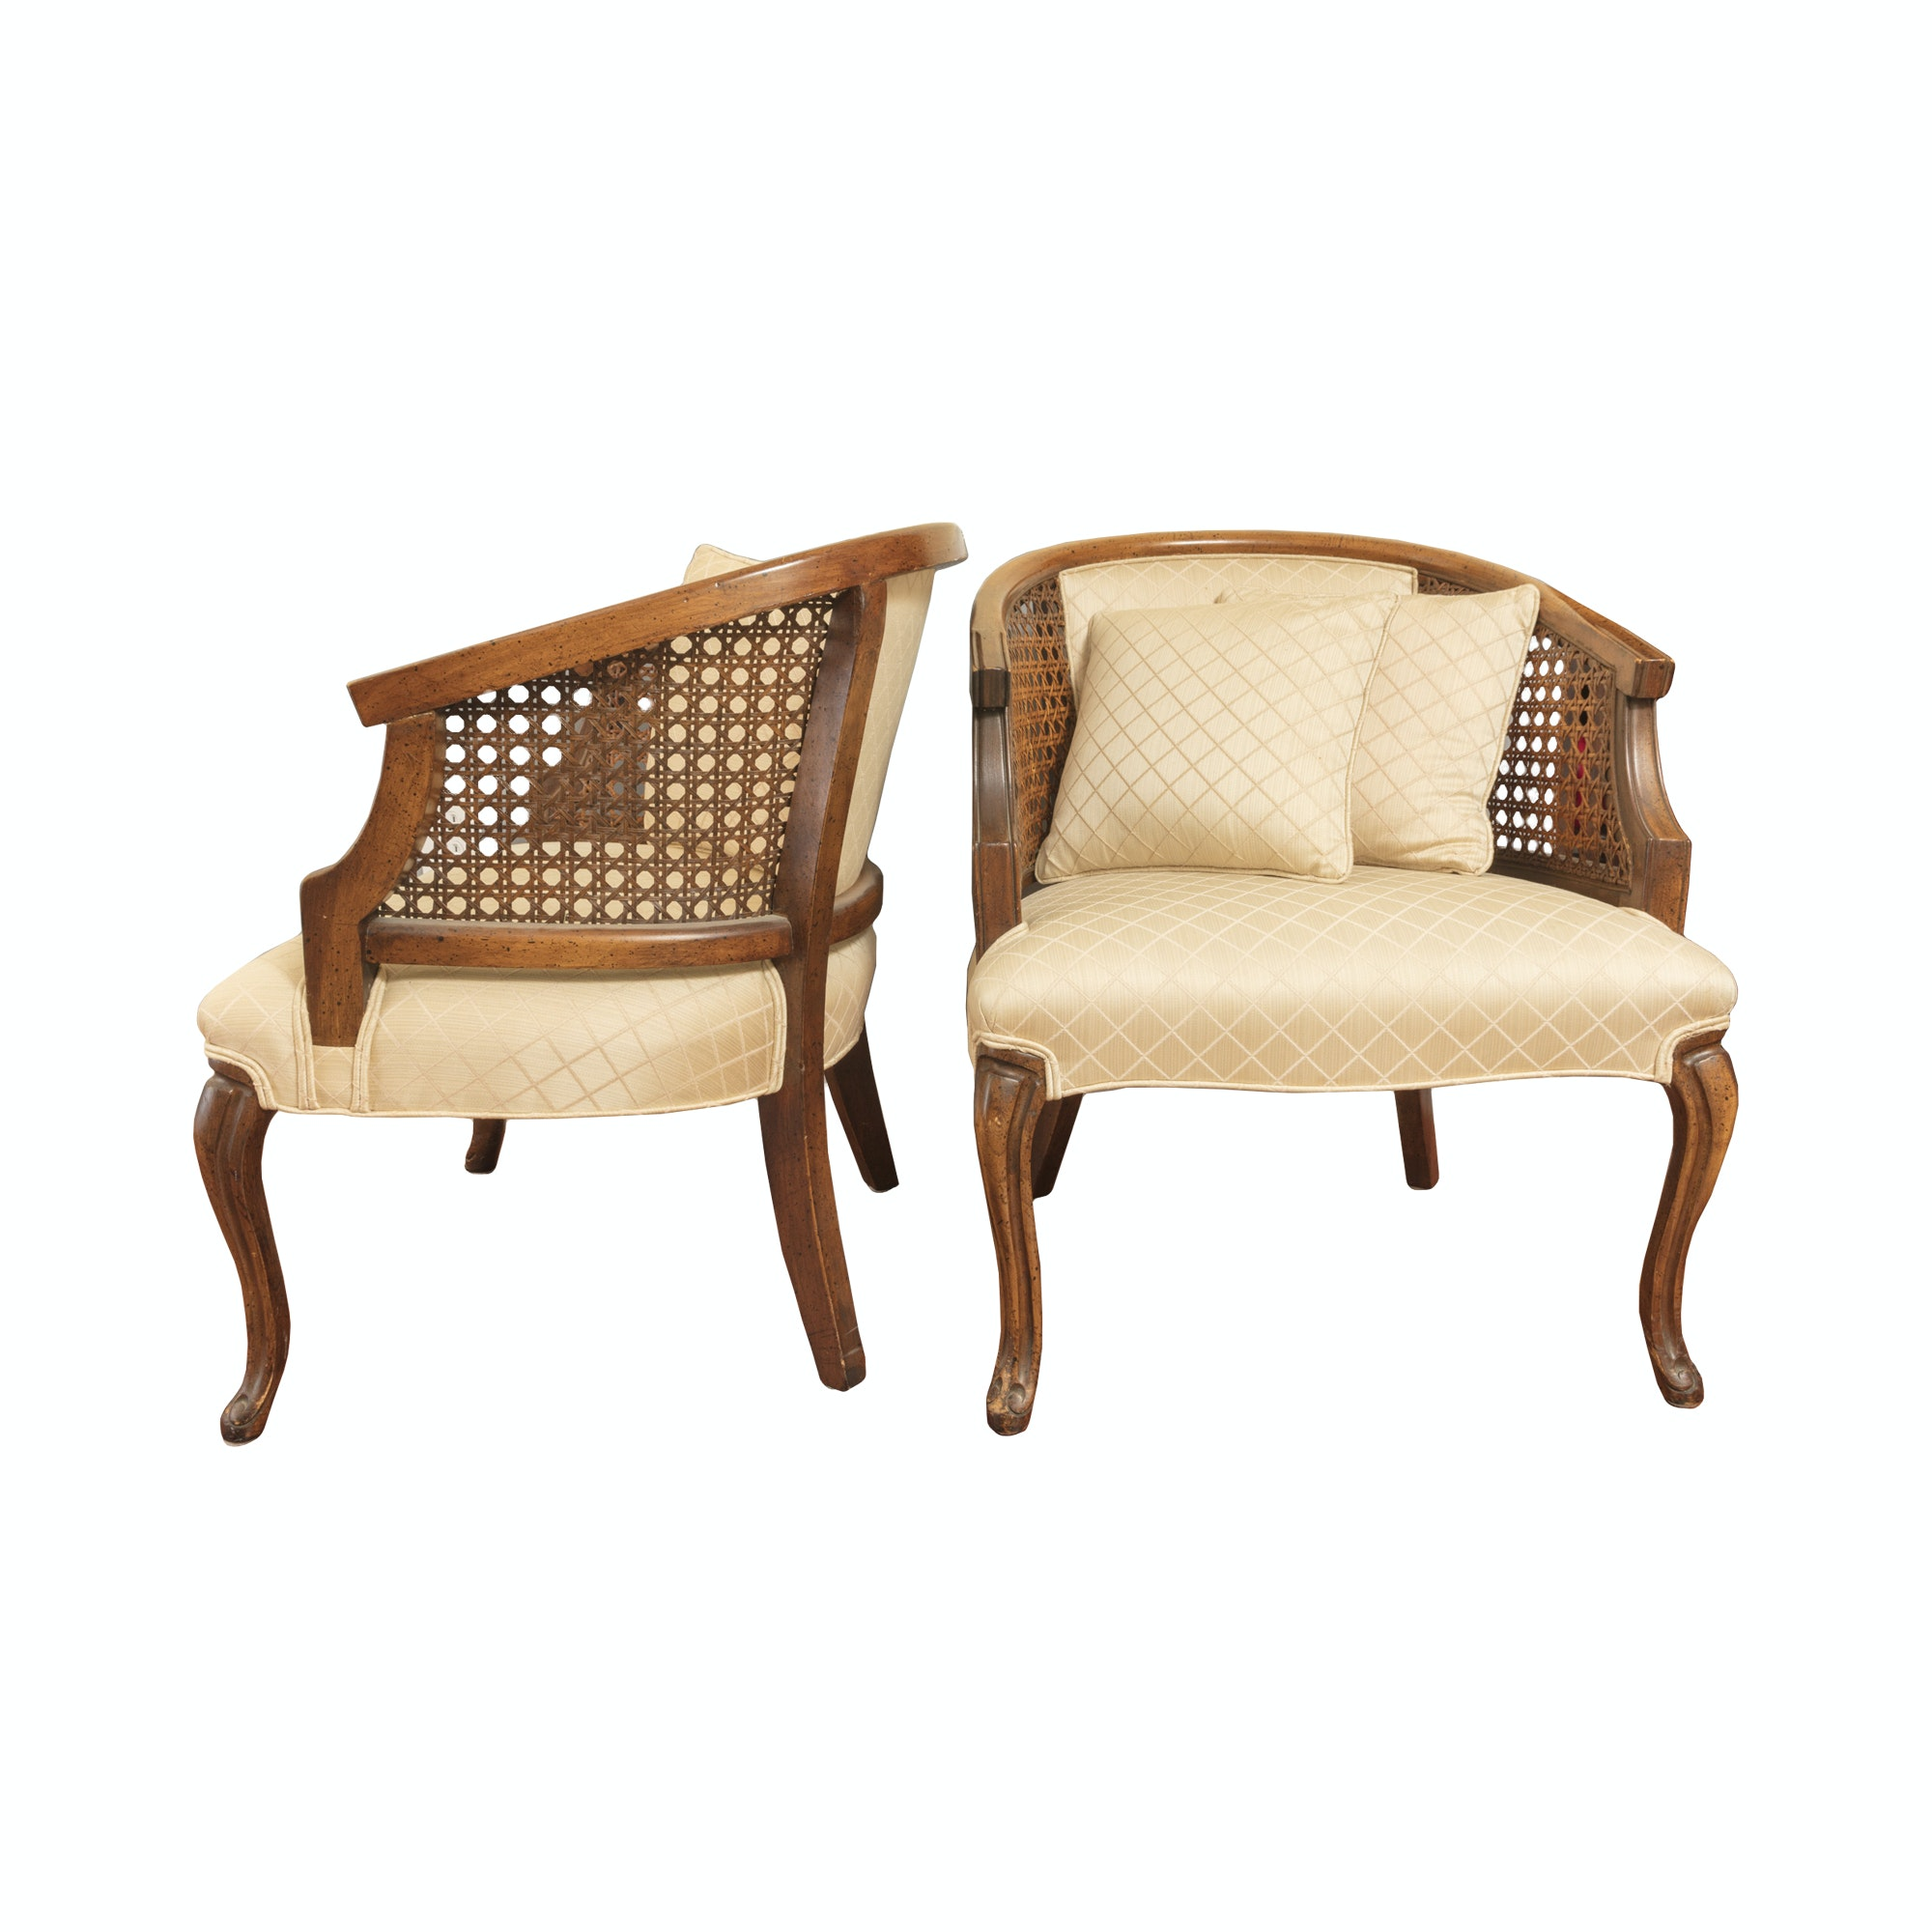 Pair of Caned Barrel Back Armchairs